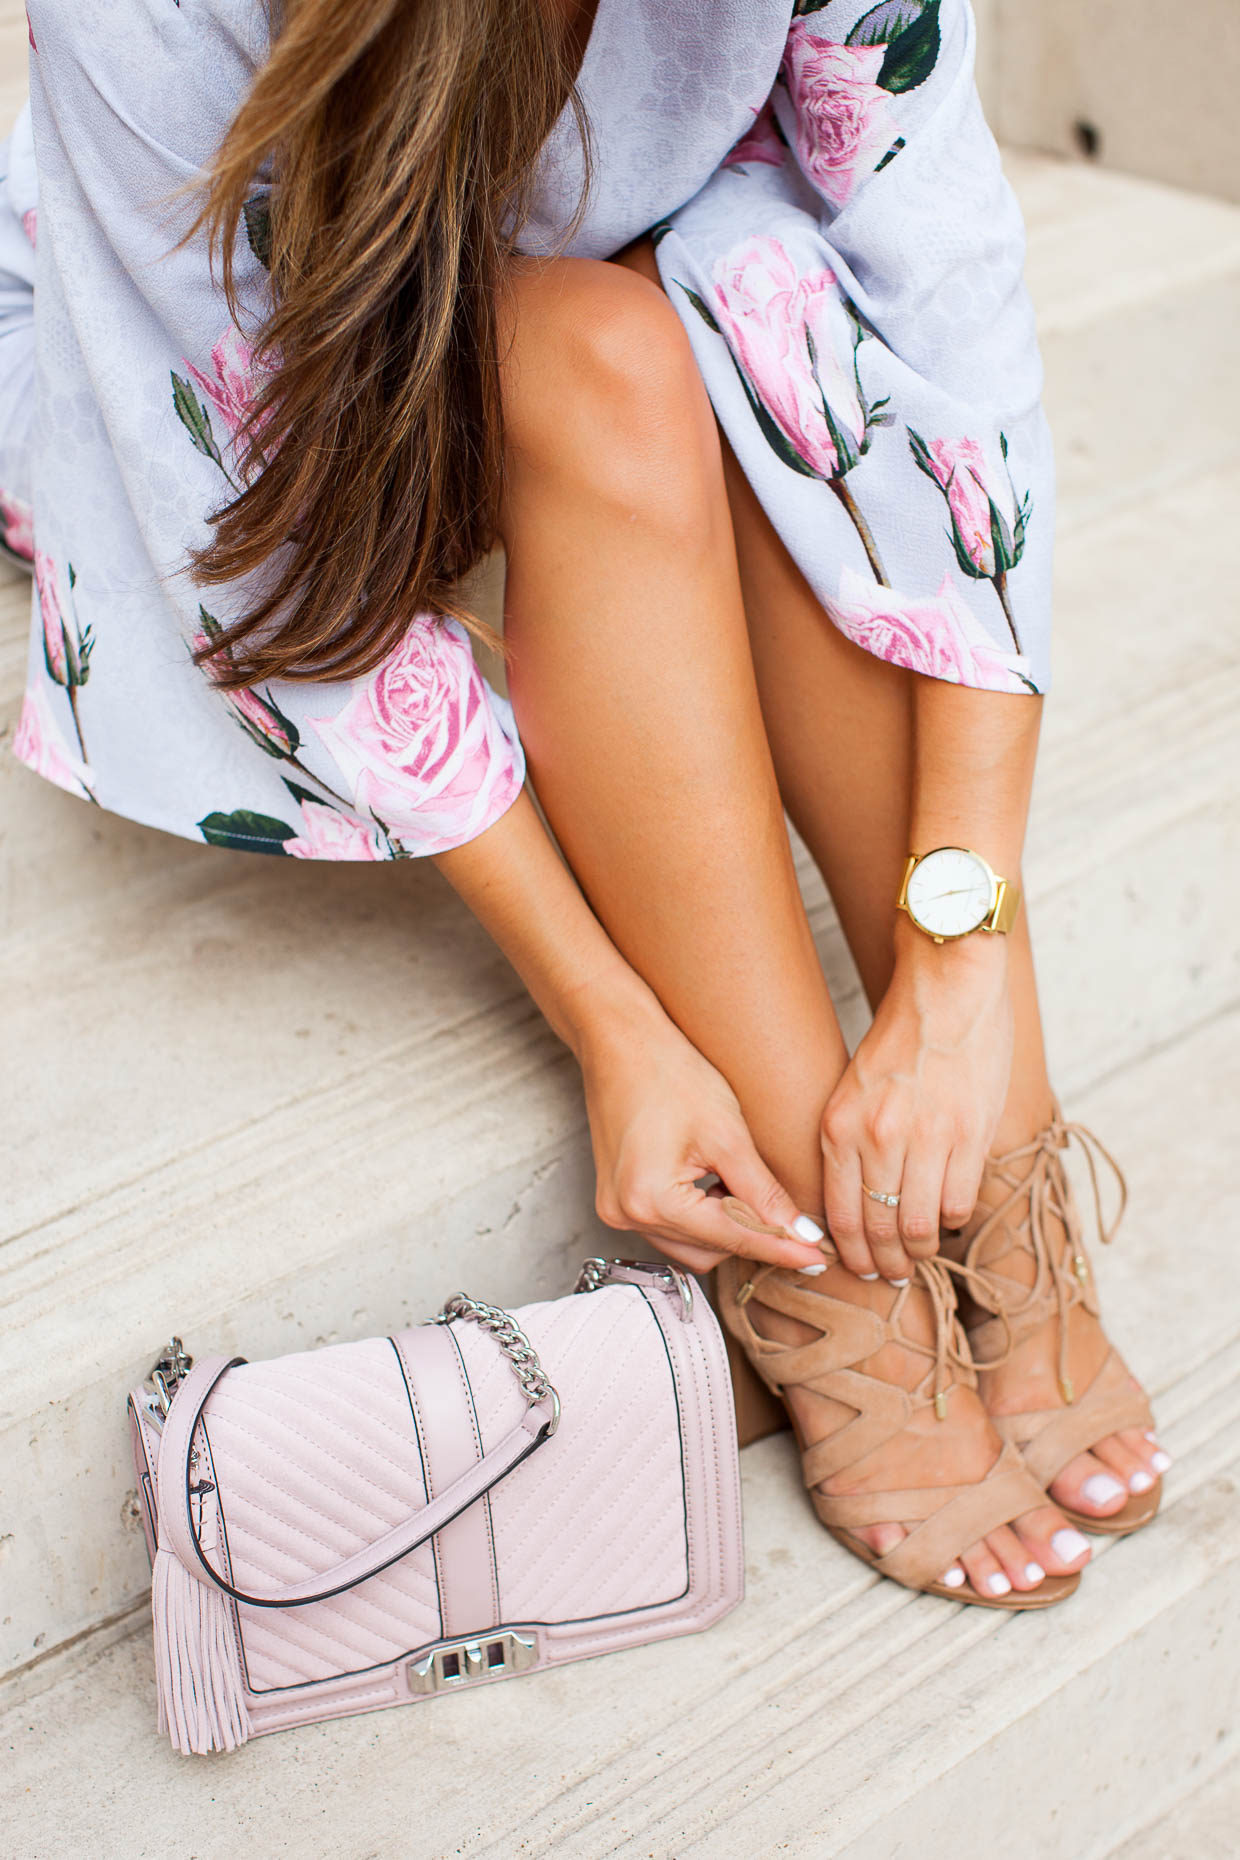 The Darling Detail is wearing a Glamorous Floral Lace Kimono Romper, Same Edelman 'Yardley' Lace-Up Sandals, a Larsson & Jennings 'Lugano' Mesh Strap Watch, and is carrying a Rebecca Minkoff 'Love' Crossbody Bag.